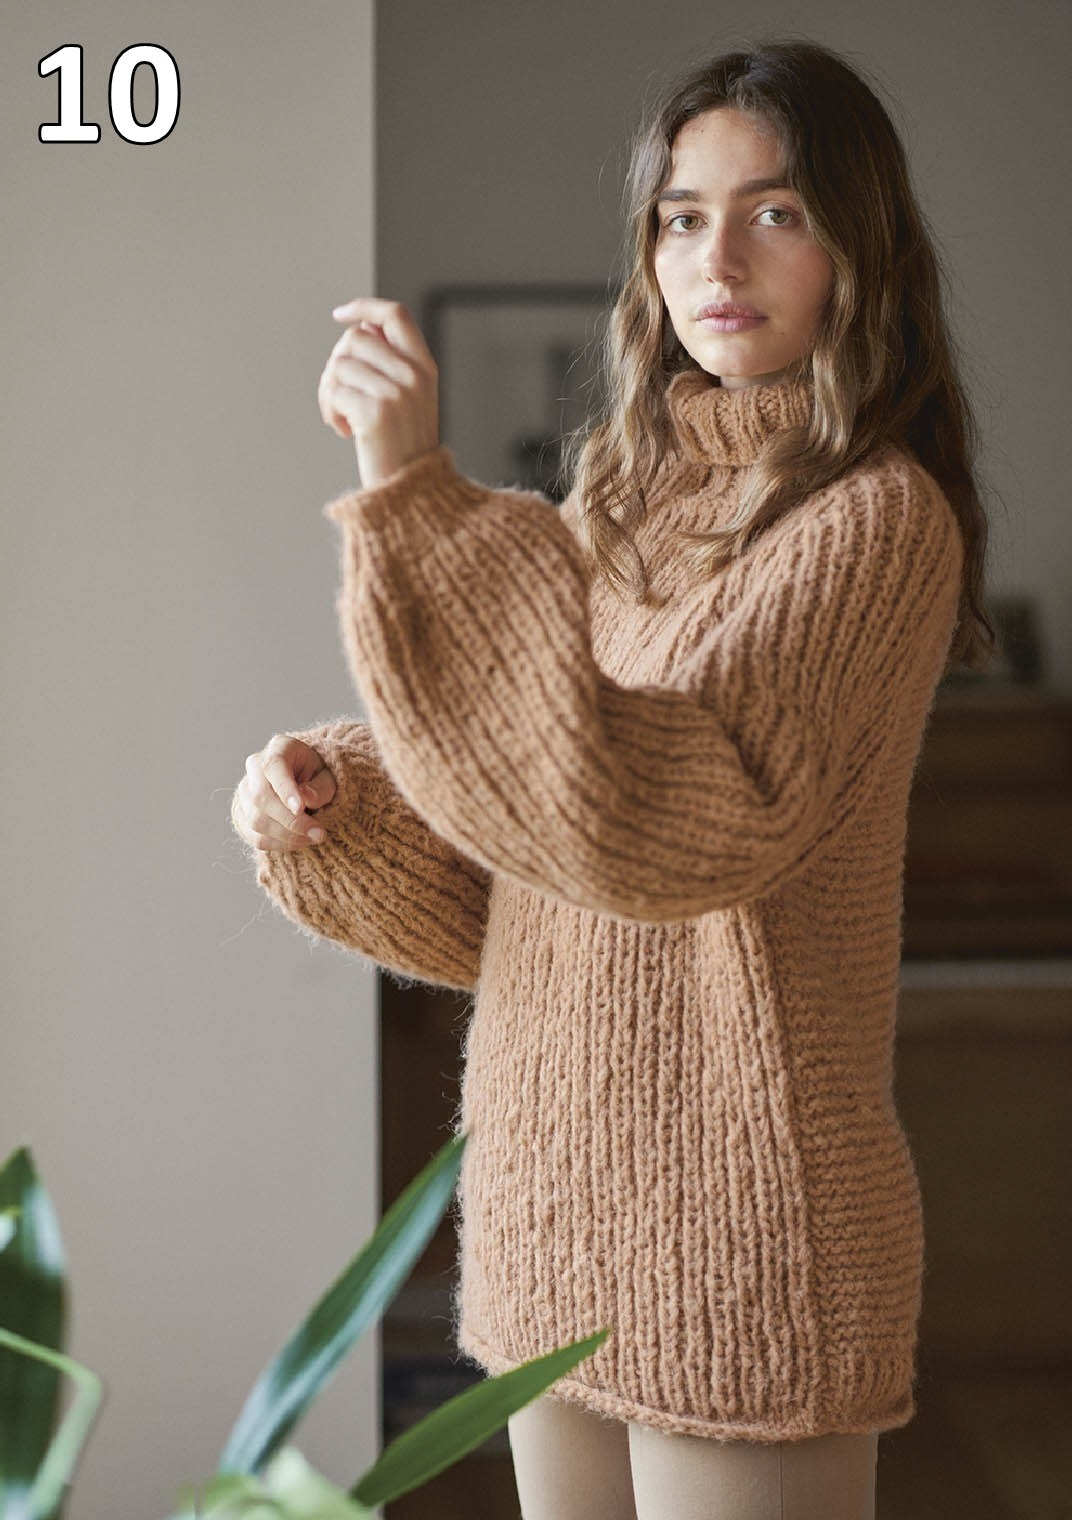 Sandnes strikkehæfte 1912 model 10 Reliefgenser (sweater)